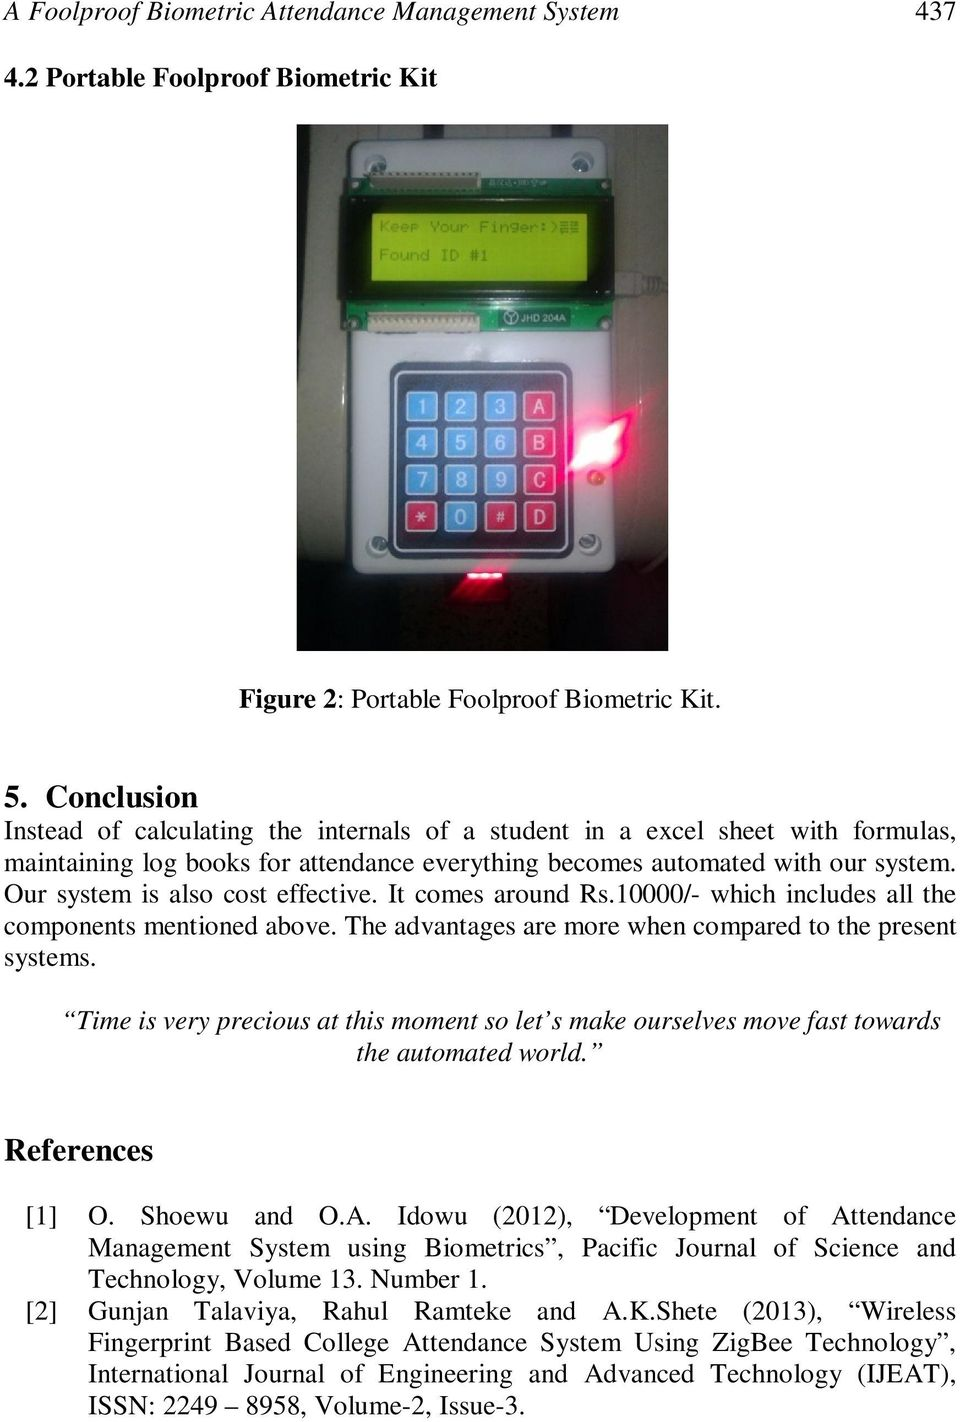 A Foolproof Biometric Attendance Management System - PDF